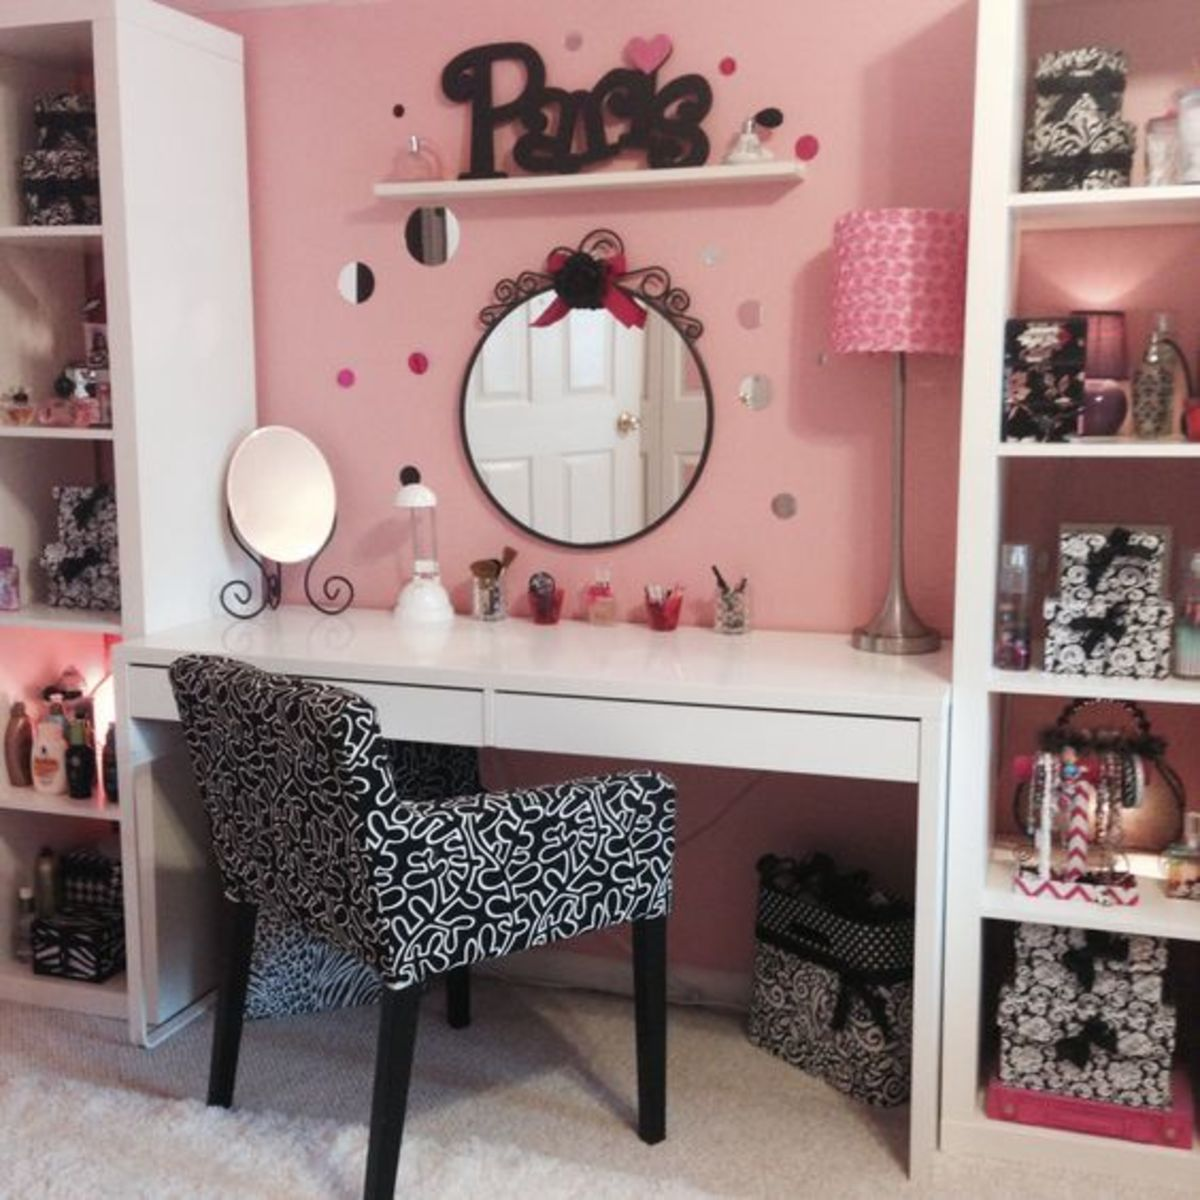 Homemade Makeup Station